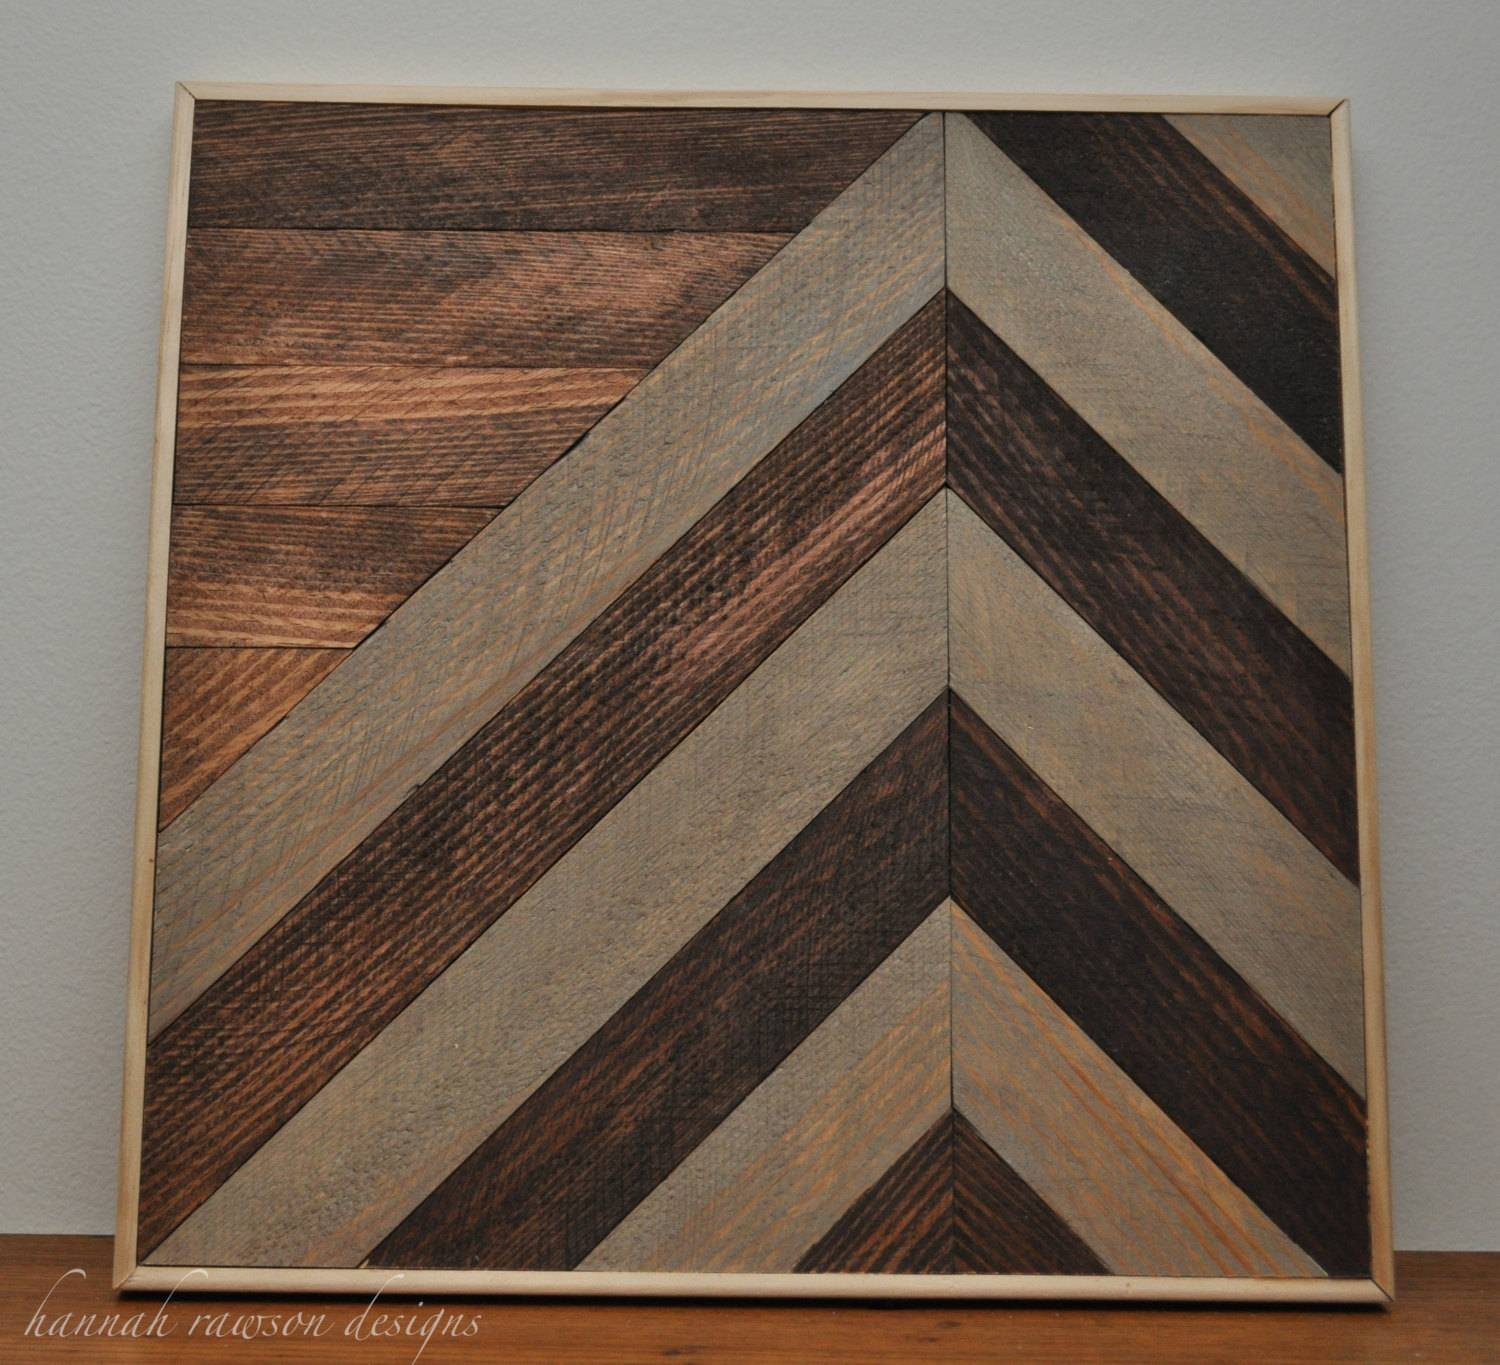 Wall Art Designs: Best Of Designing Wooden Wall Art Decor Visua In Current Natural Wood Wall Art (View 4 of 20)